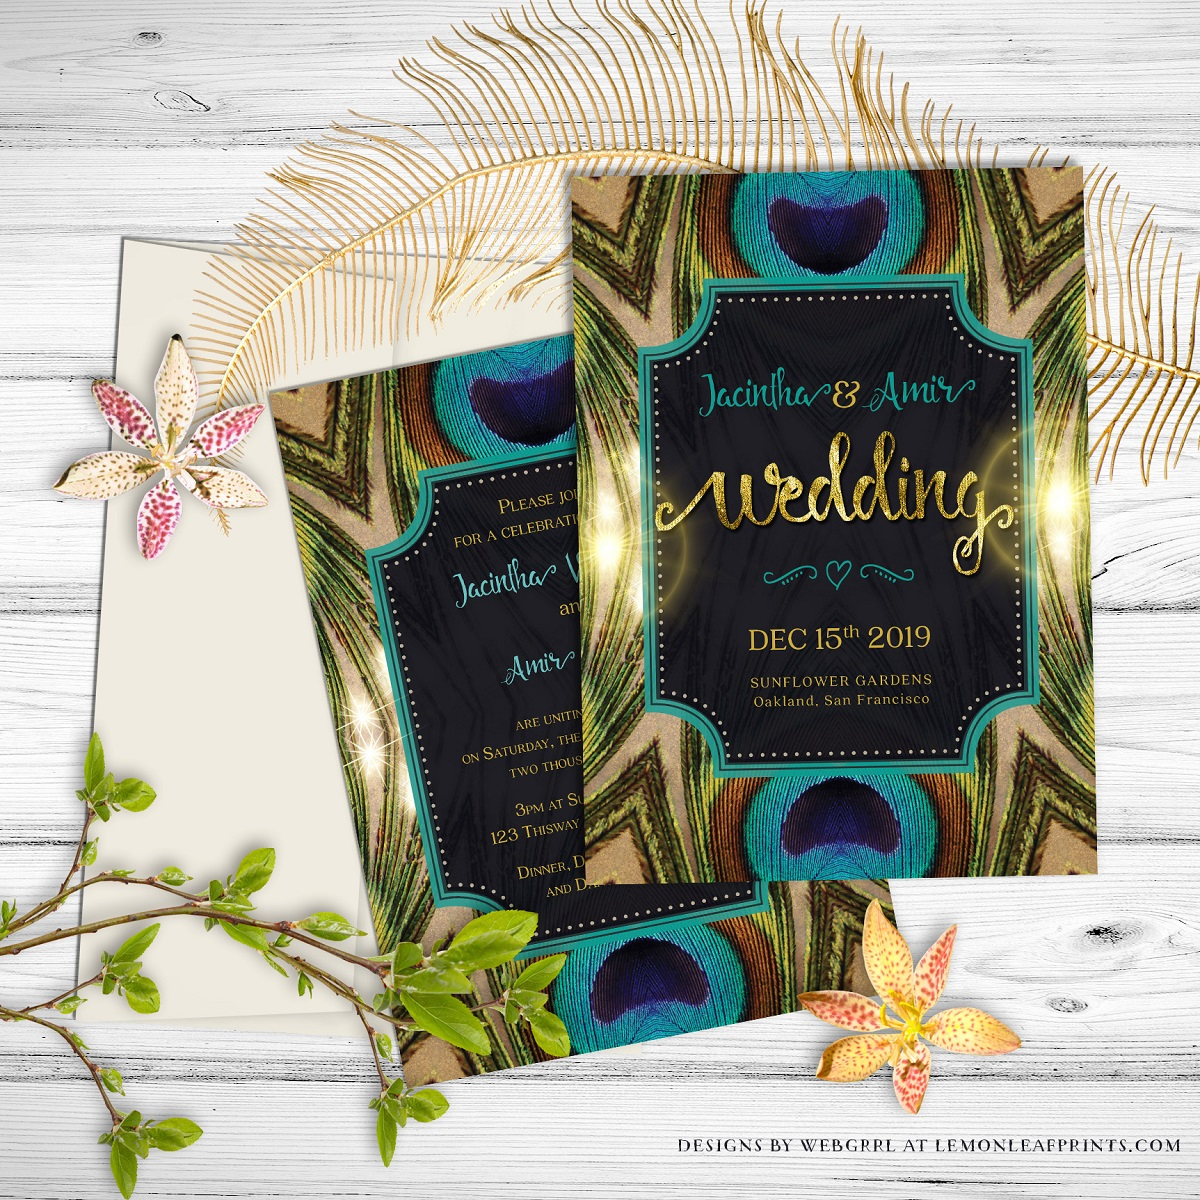 Hindu indian wedding invitations eastern fusions announce your wedding with boho chic charm this peacock feathers wedding invitation is the perfect stopboris Choice Image